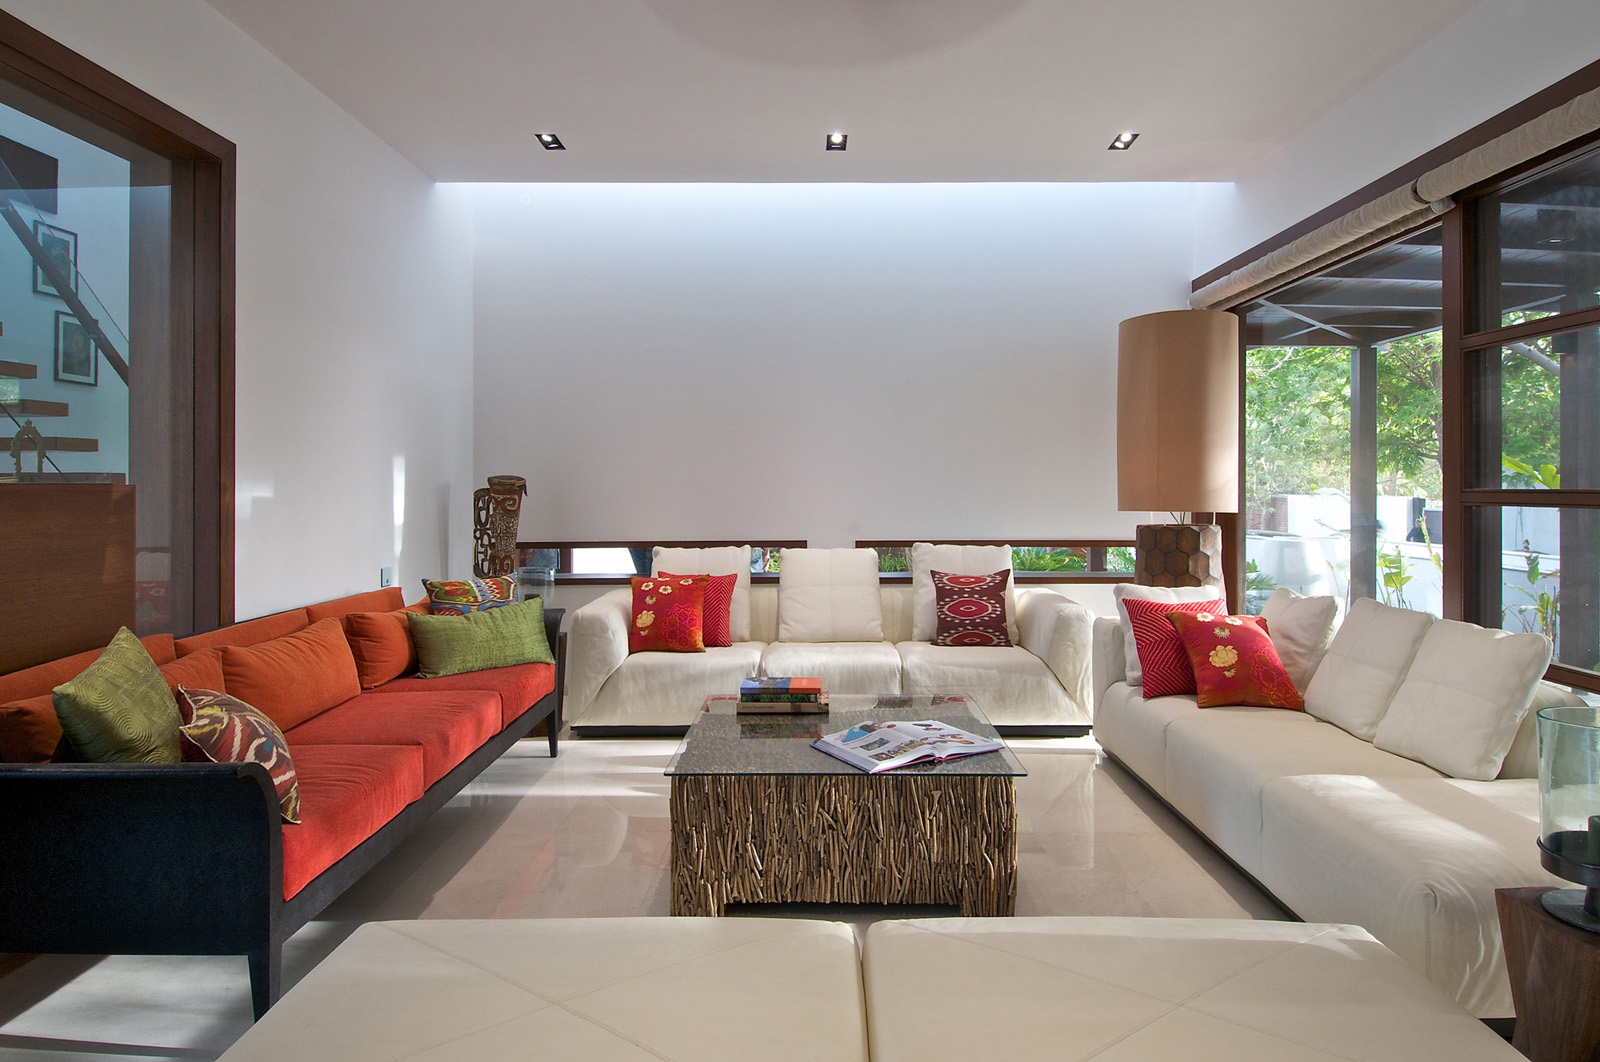 Related posts minimalist bungalow in india minimalist bungalow in india · architecturally stunning contemporary house